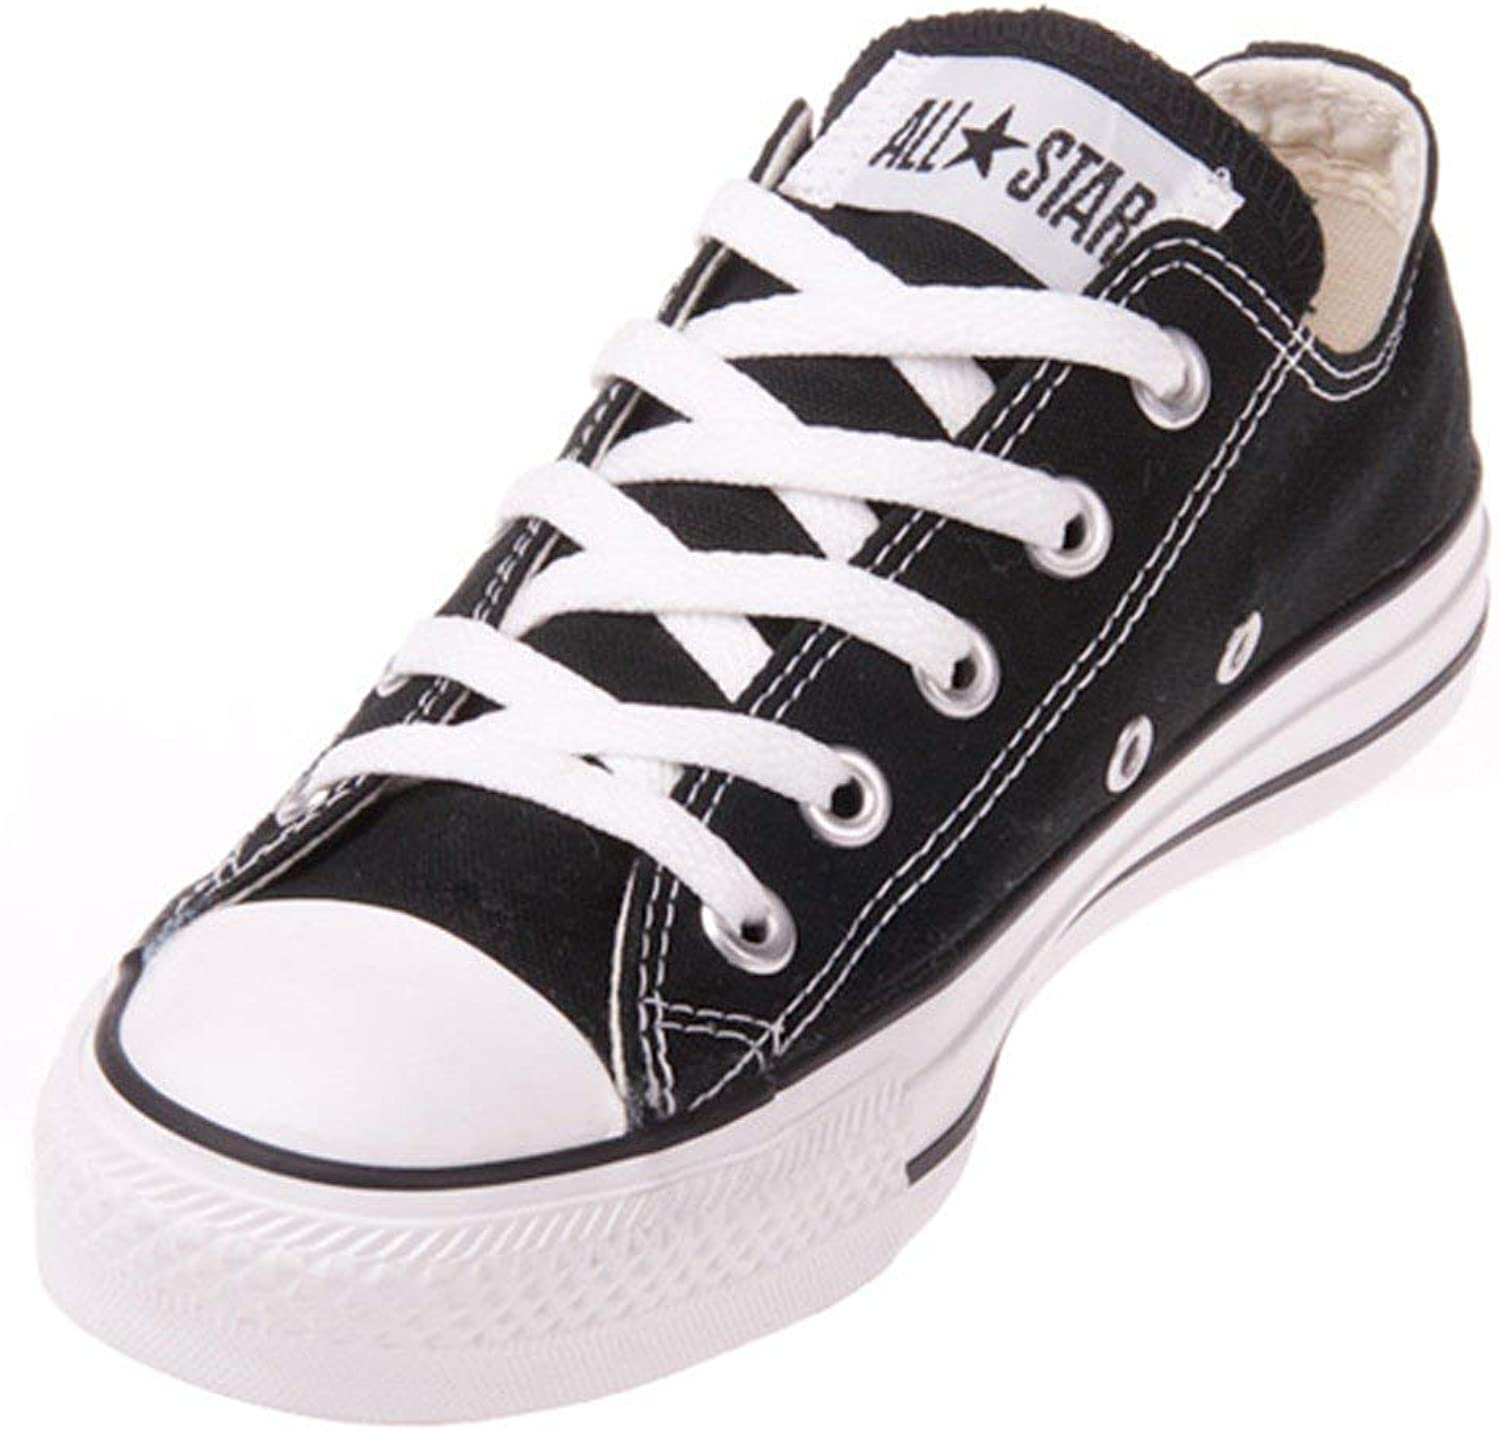 Converse Unisex Chuck Taylor All Star Ox Basketball shoes (11 B(M) US Women   9 D(M) US Men, Black)